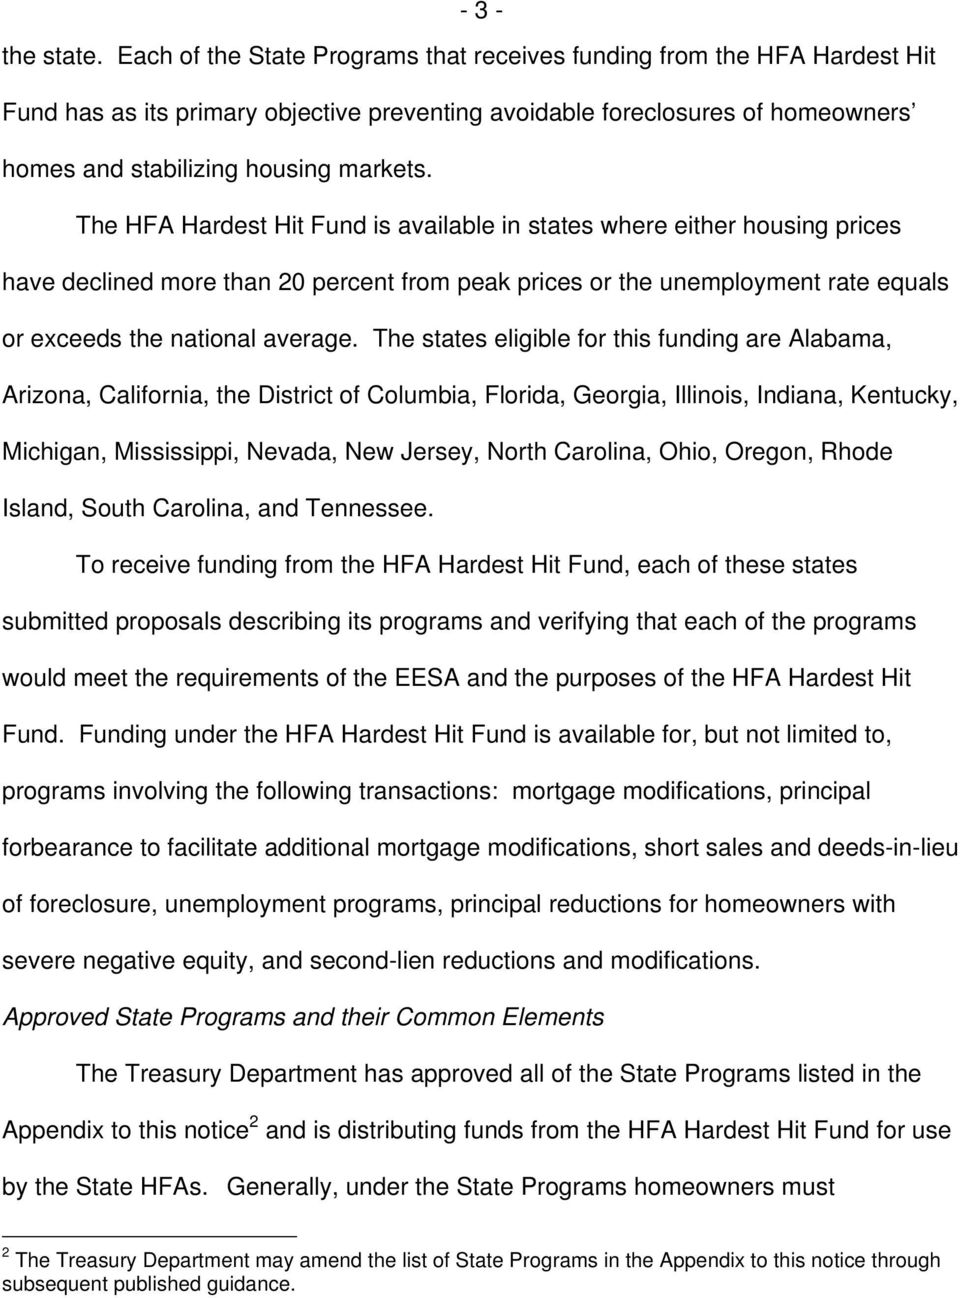 The HFA Hardest Hit Fund is available in states where either housing prices have declined more than 20 percent from peak prices or the unemployment rate equals or exceeds the national average.